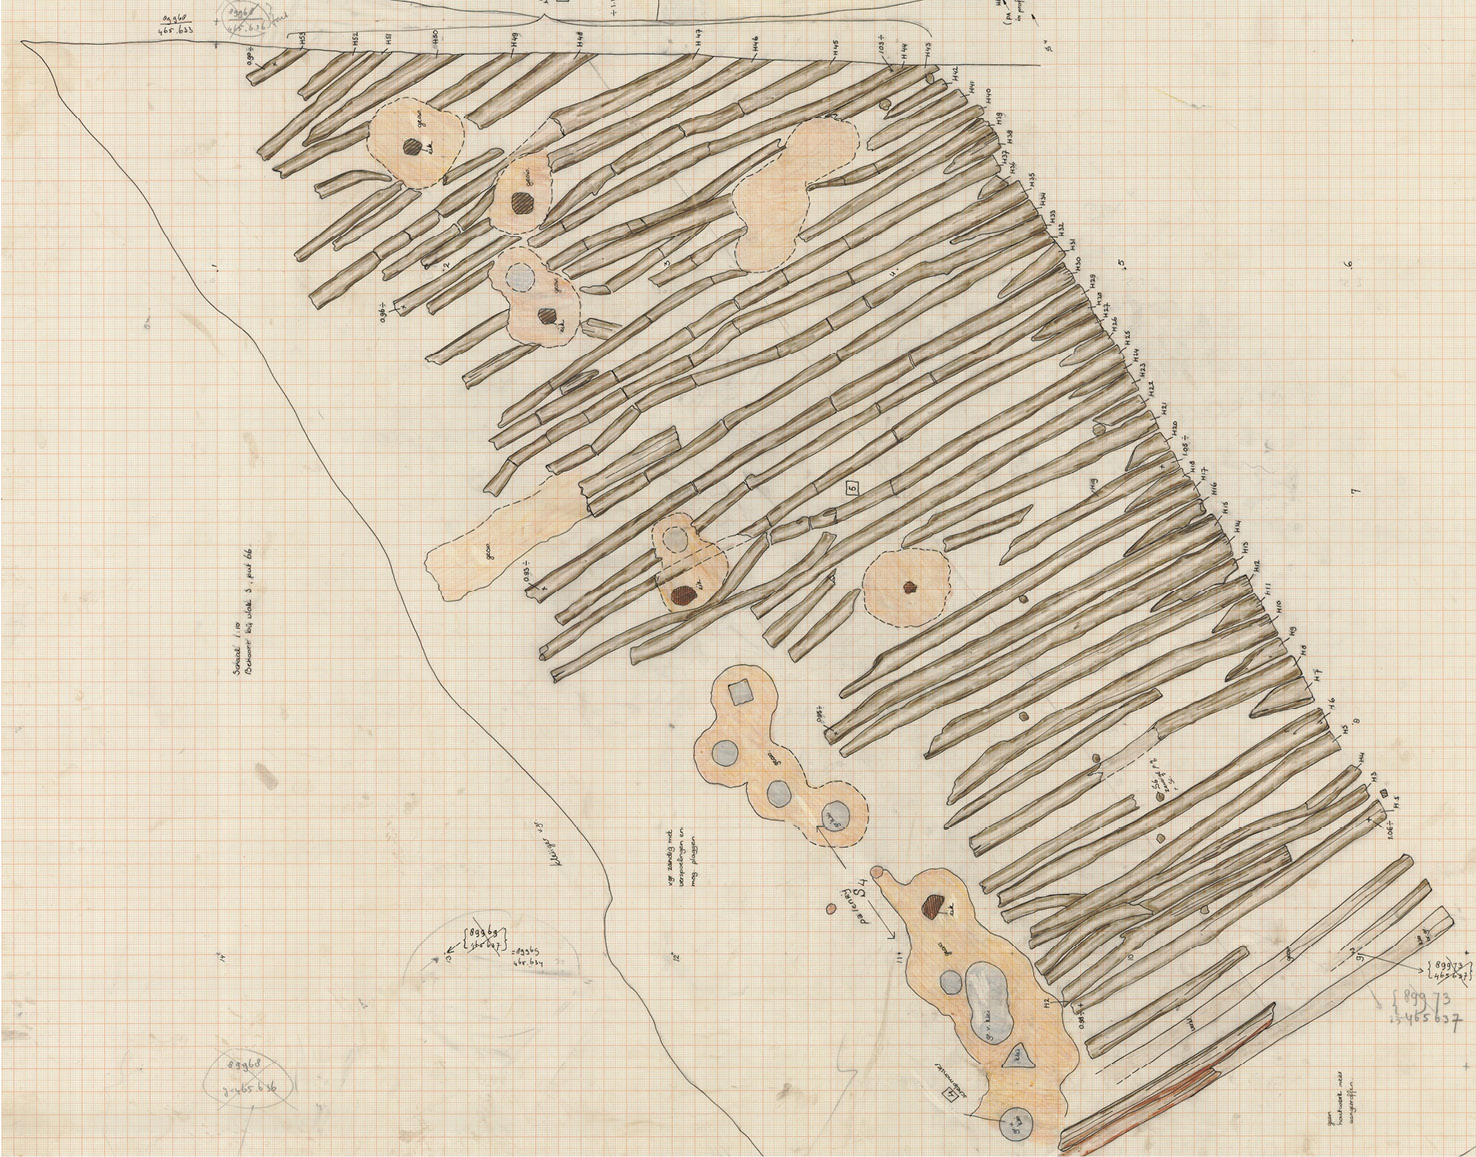 below Various features recorded on field drawings made during the 1986 work at Marktveld can now be seen in a new light, including the rampart (top) and the remains of half a tower (arrowed, bottom). The latter drawing also shows the road dating to the reign of Hadrian.